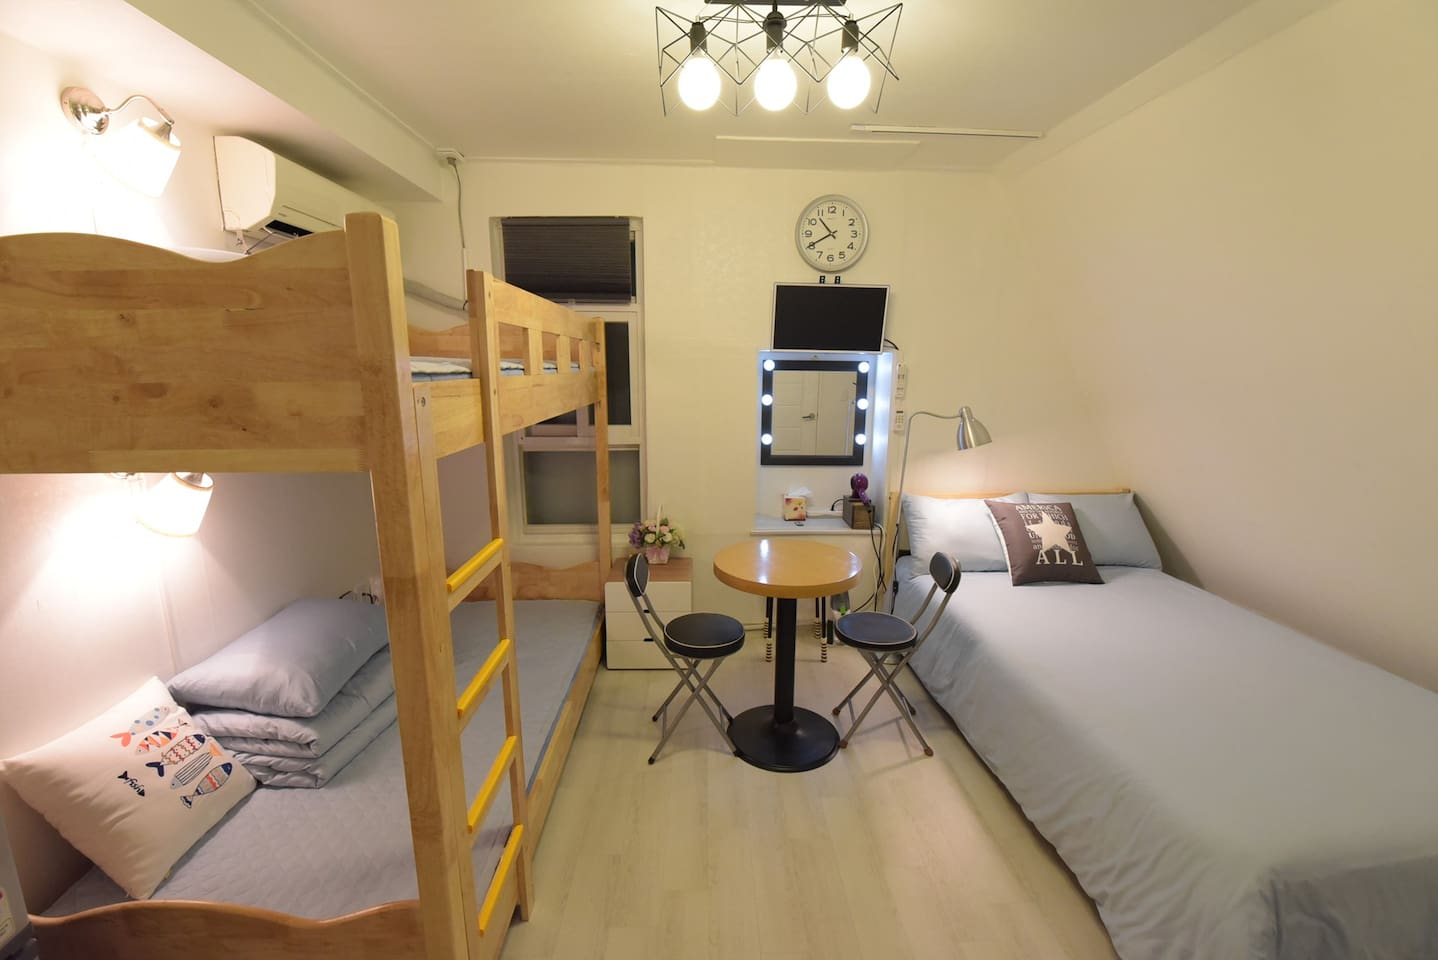 #501 is full equipped one doublesize and one bunk-bed room / 501호는 모든시설이 갖춰진 더블침대 1개, 이층침대 1개 방입니다